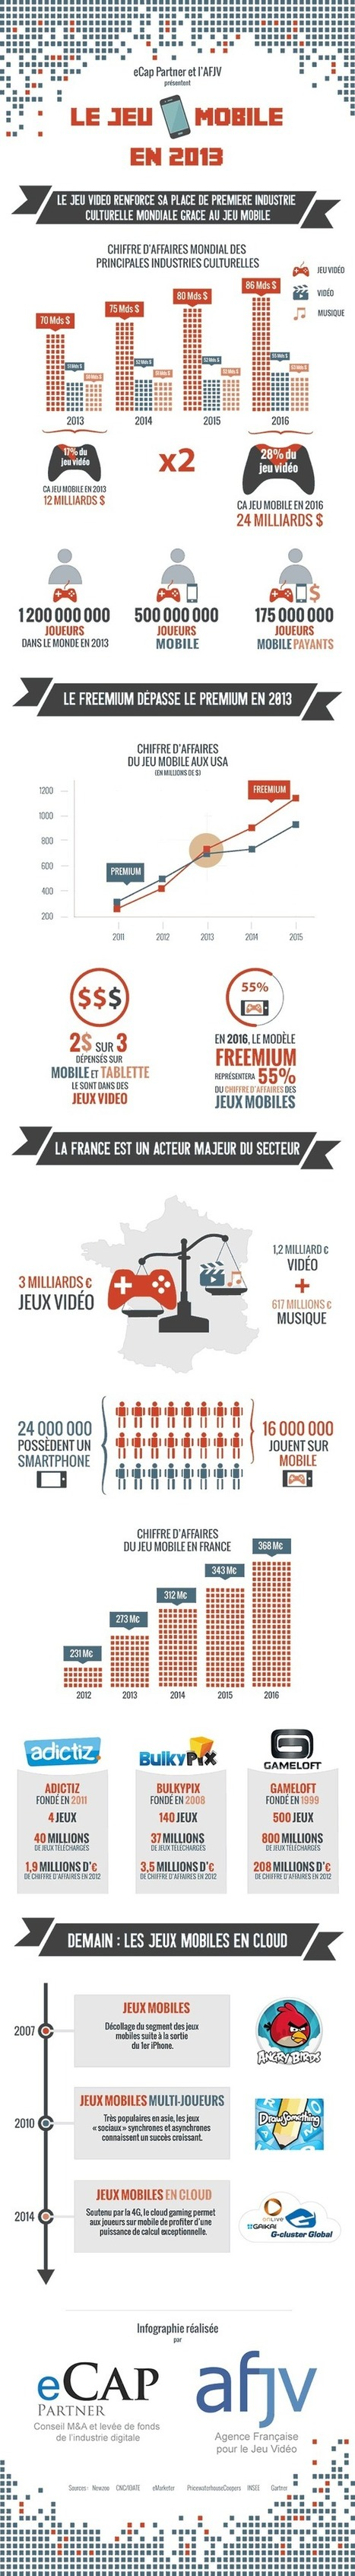 Infographie : Le Jeu Mobile en 2013 | MultiMEDIAS | Scoop.it